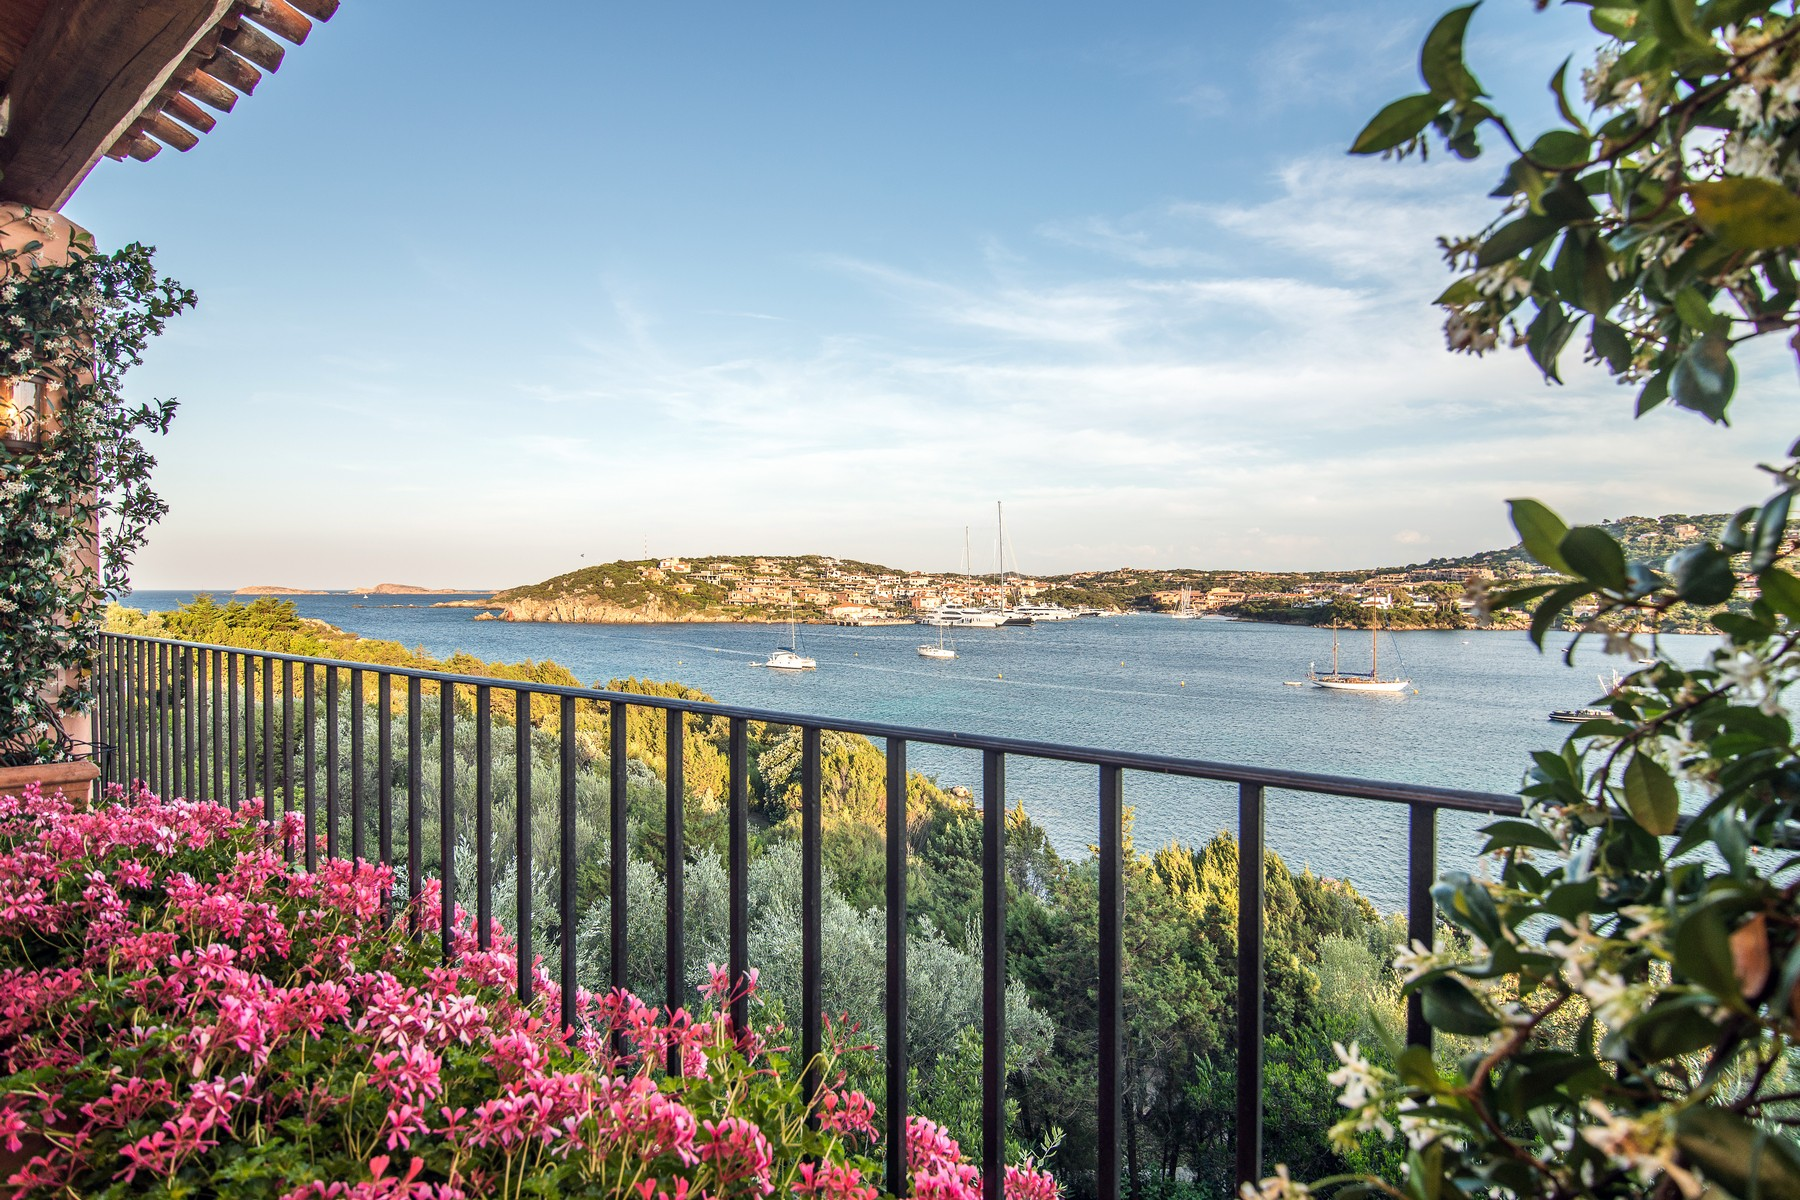 Additional photo for property listing at Propriété pieds dans l'eau avec plage privée Porto Cervo Marina Costa Smeralda Porto Cervo, Olbia Tempio 07021 Italie